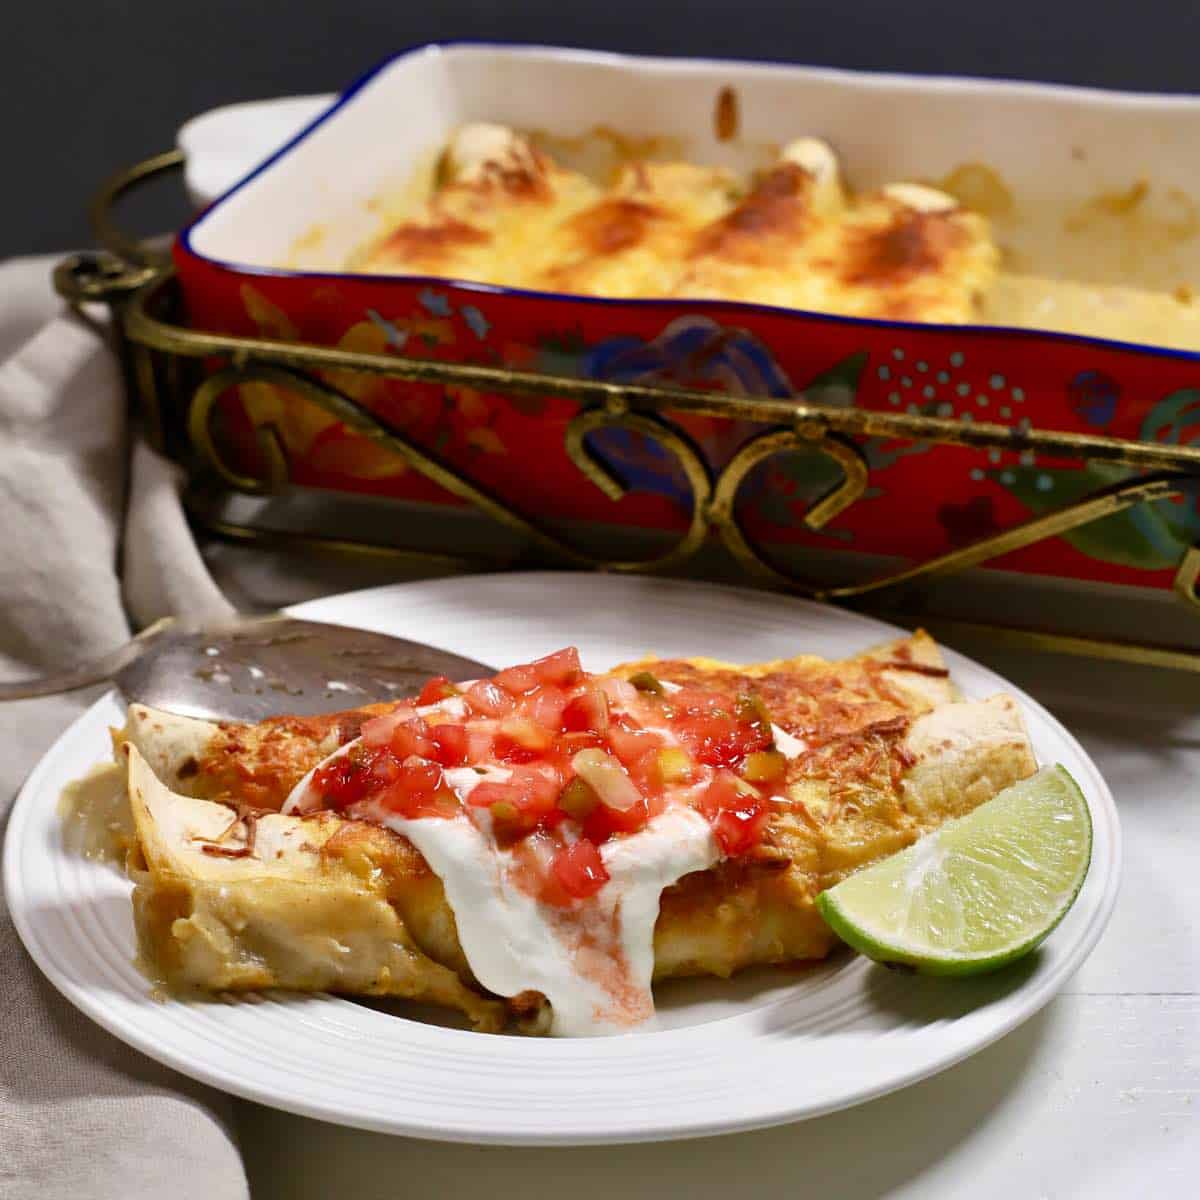 Enchiladas on a plate topped with sour cream and salsa.